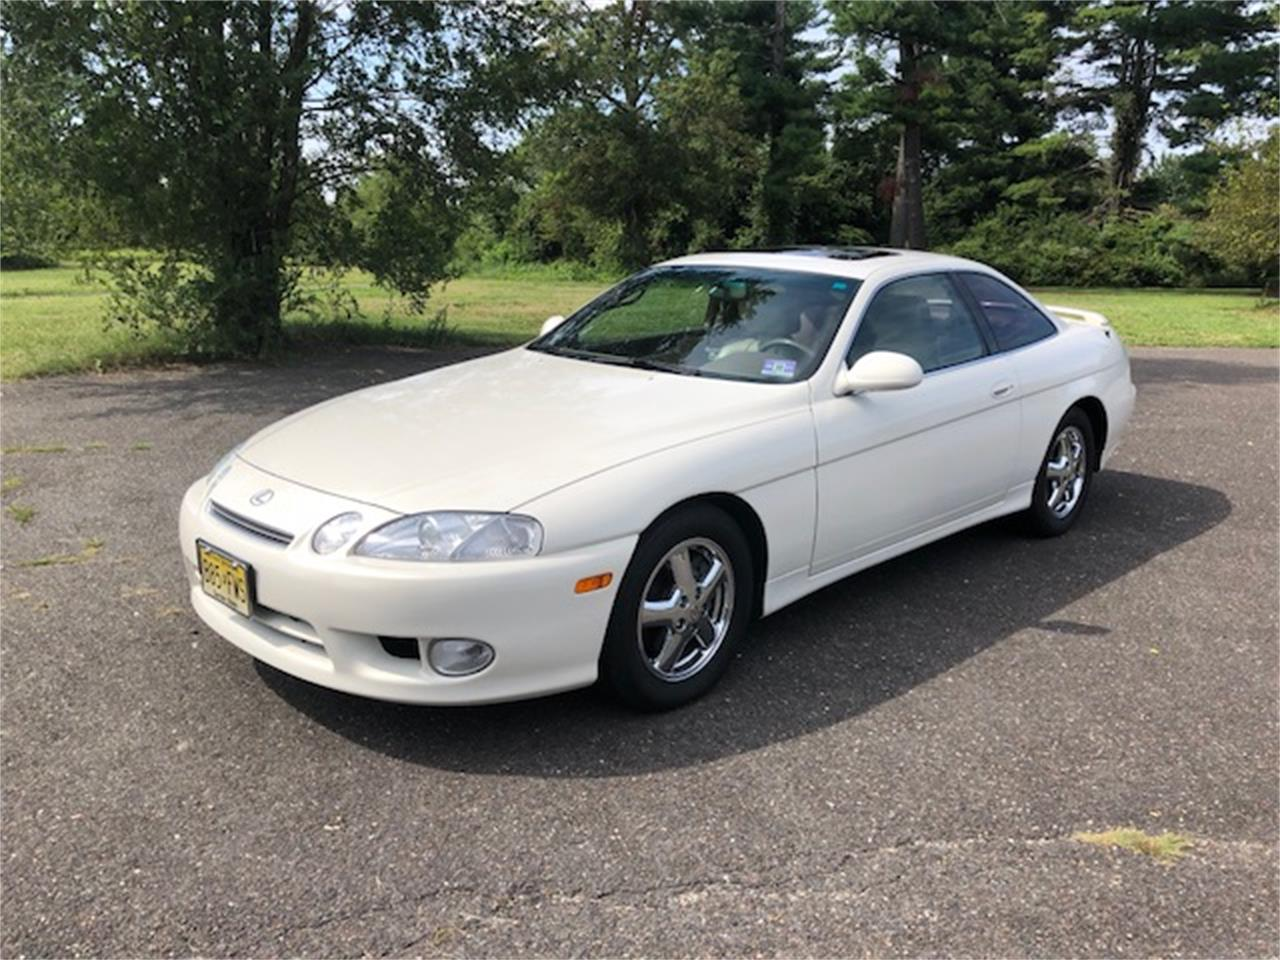 2000 Lexus SC400 (CC-1422593) for sale in Wenonah, New Jersey